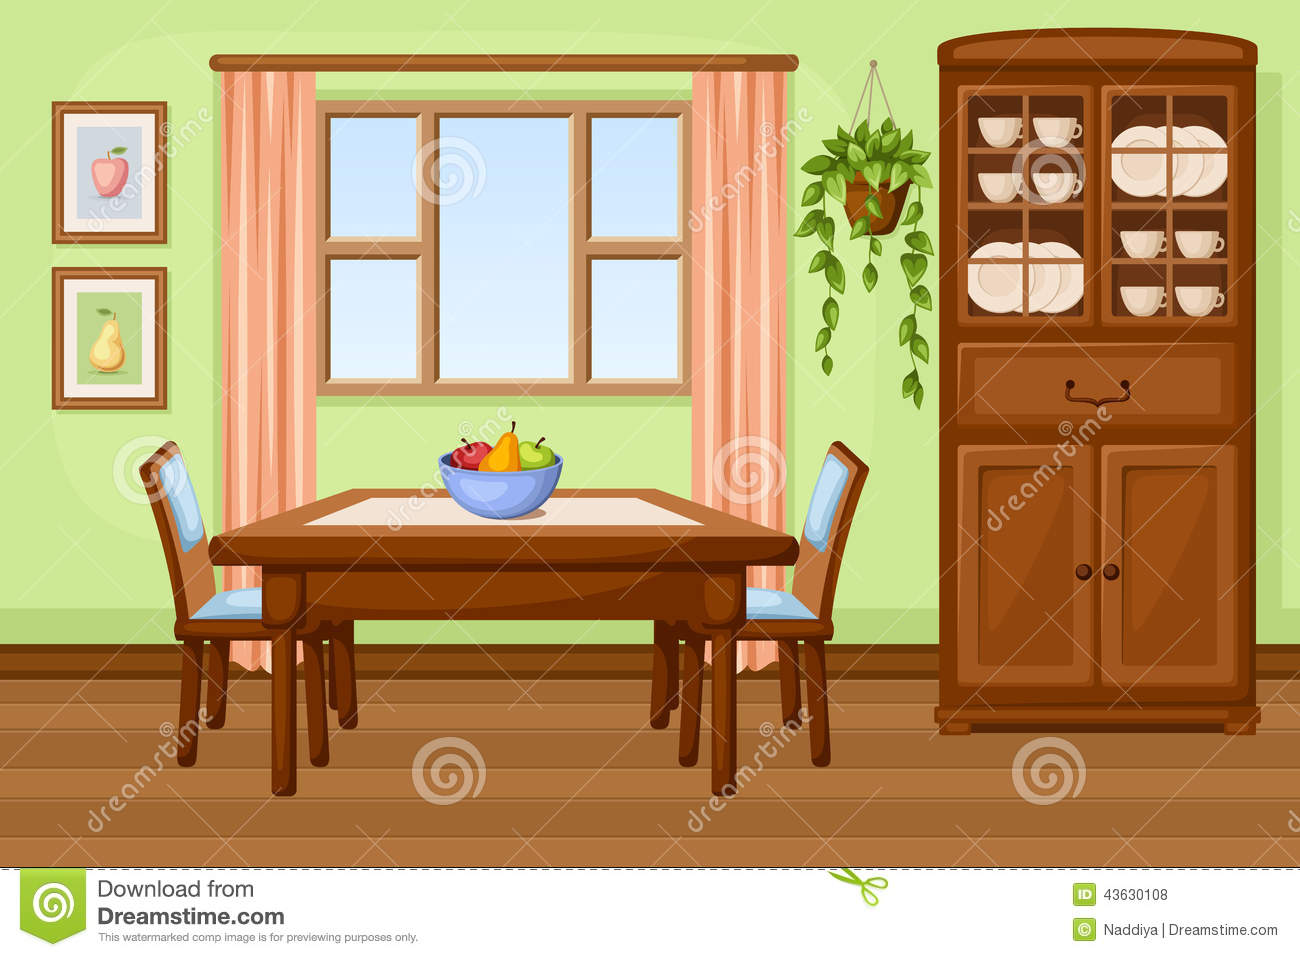 Clipart ideas for dining room.